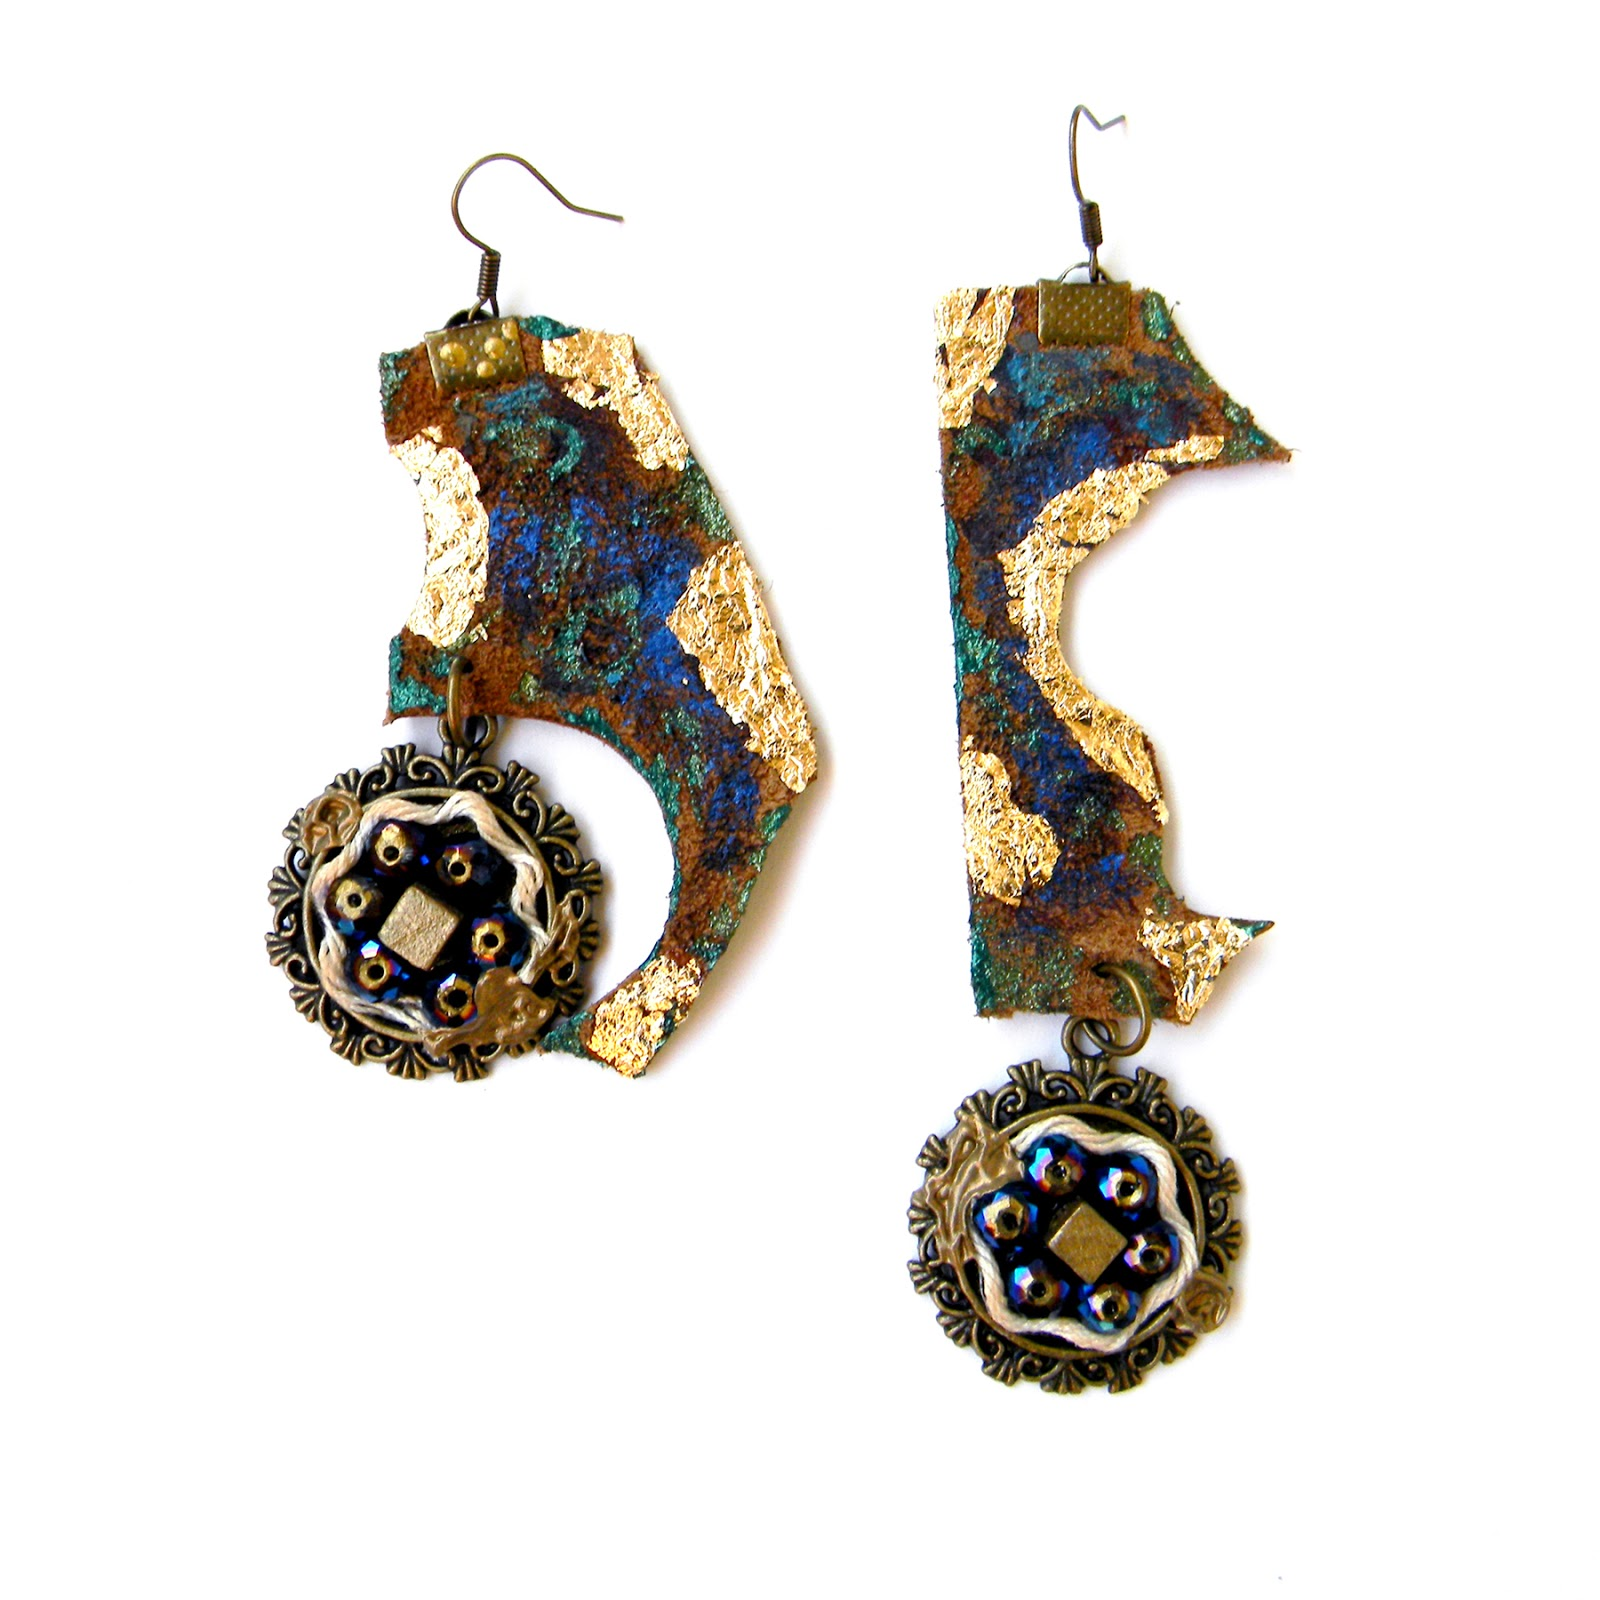 Unique Handmade Earrings Original Steampunk Fashion